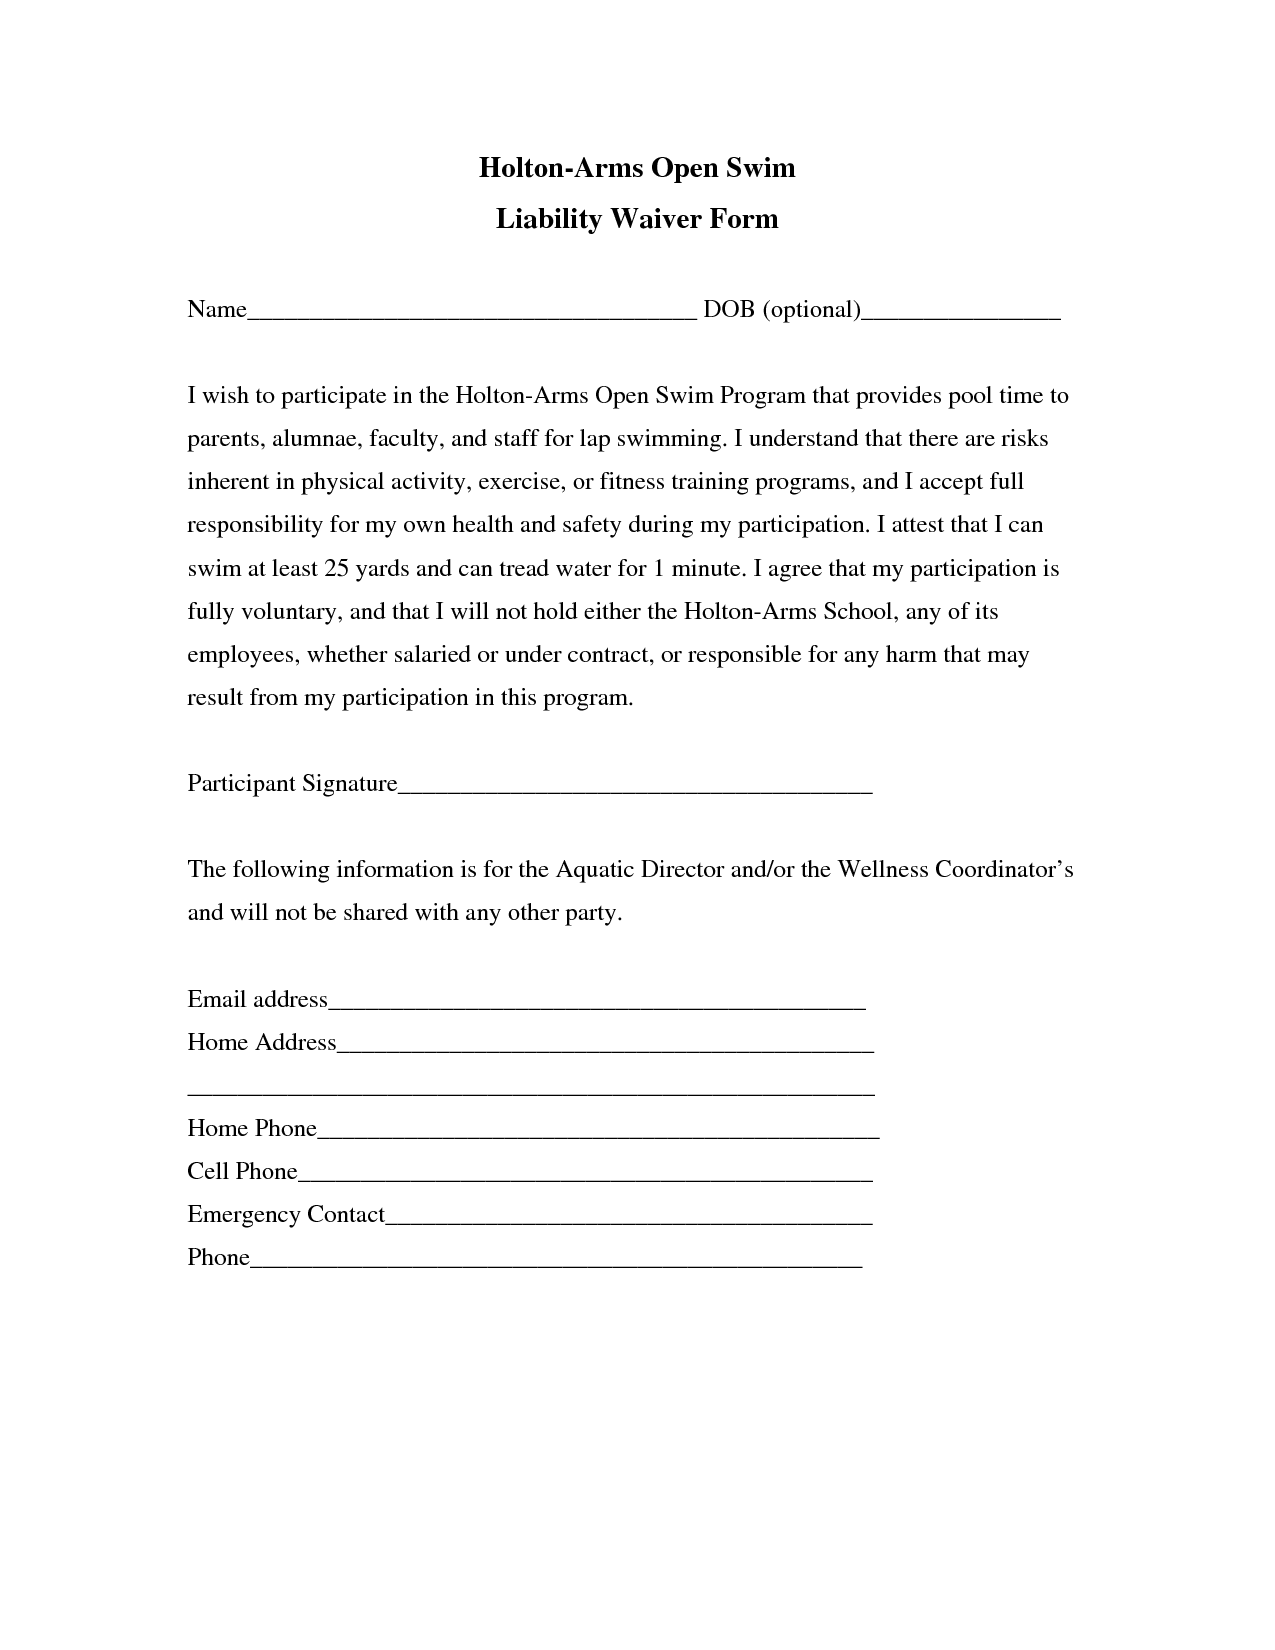 Liability insurance liability insurance waiver template for Waiver of liability template uk